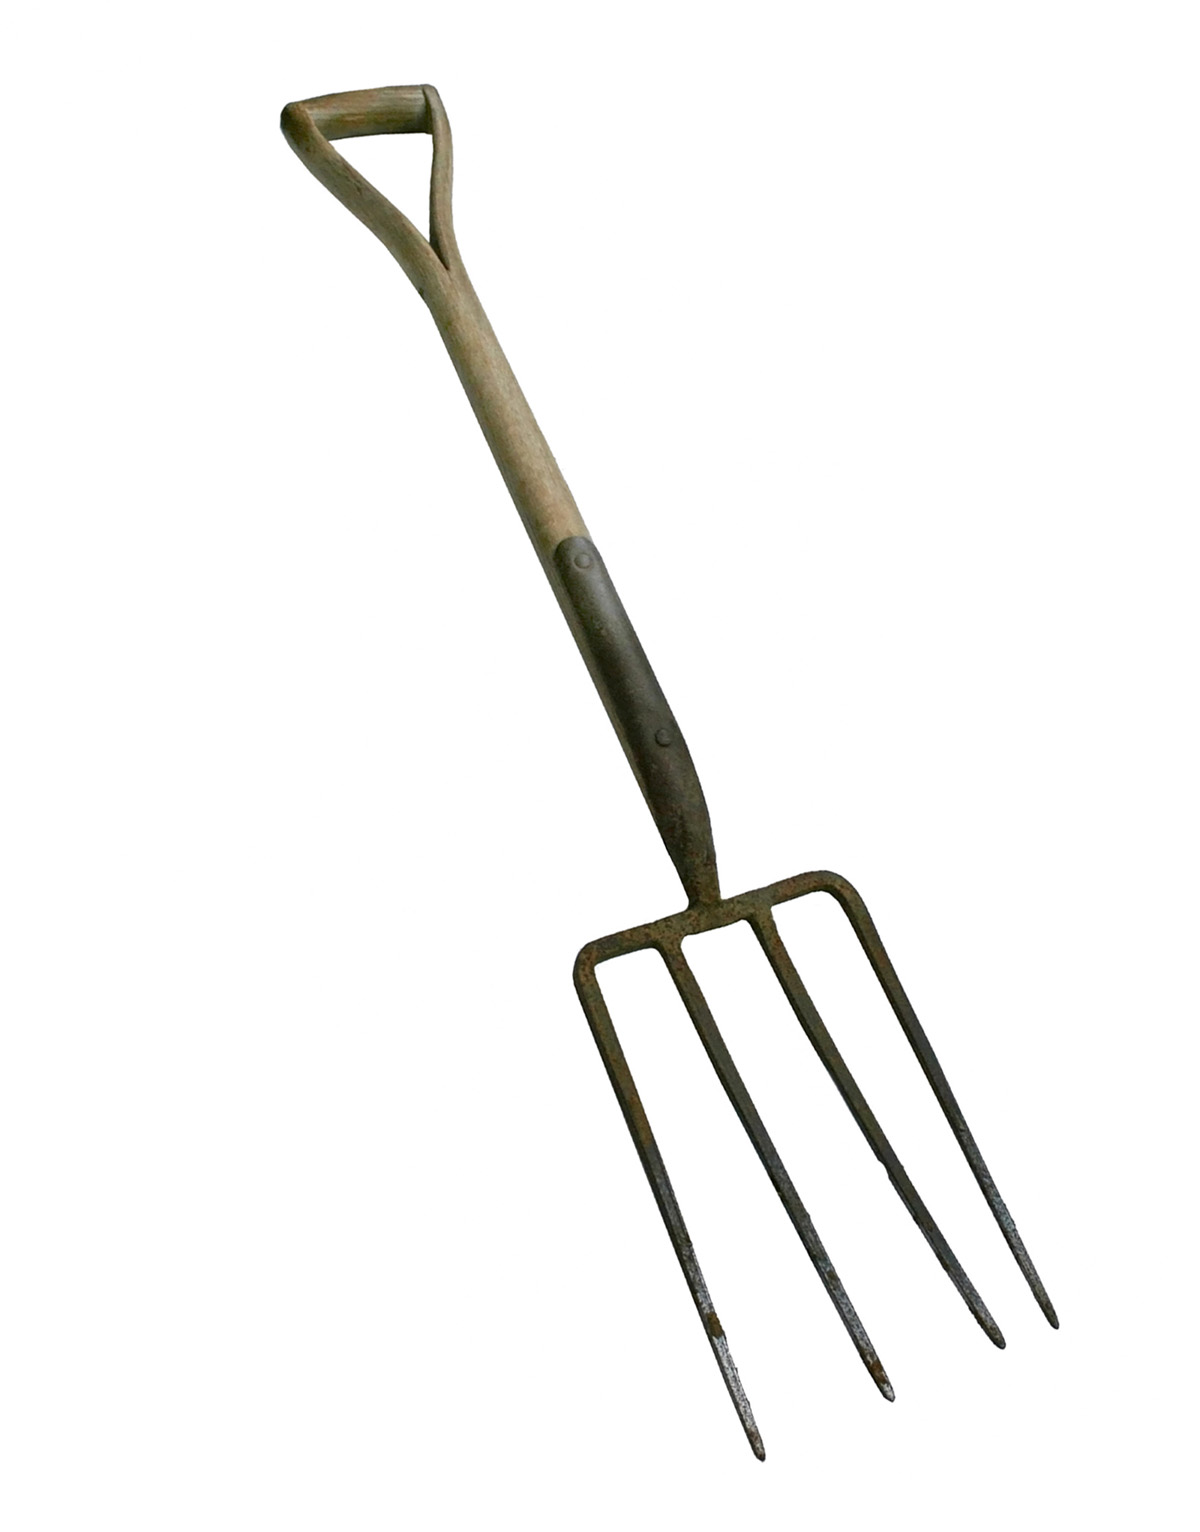 Small shovel 6459